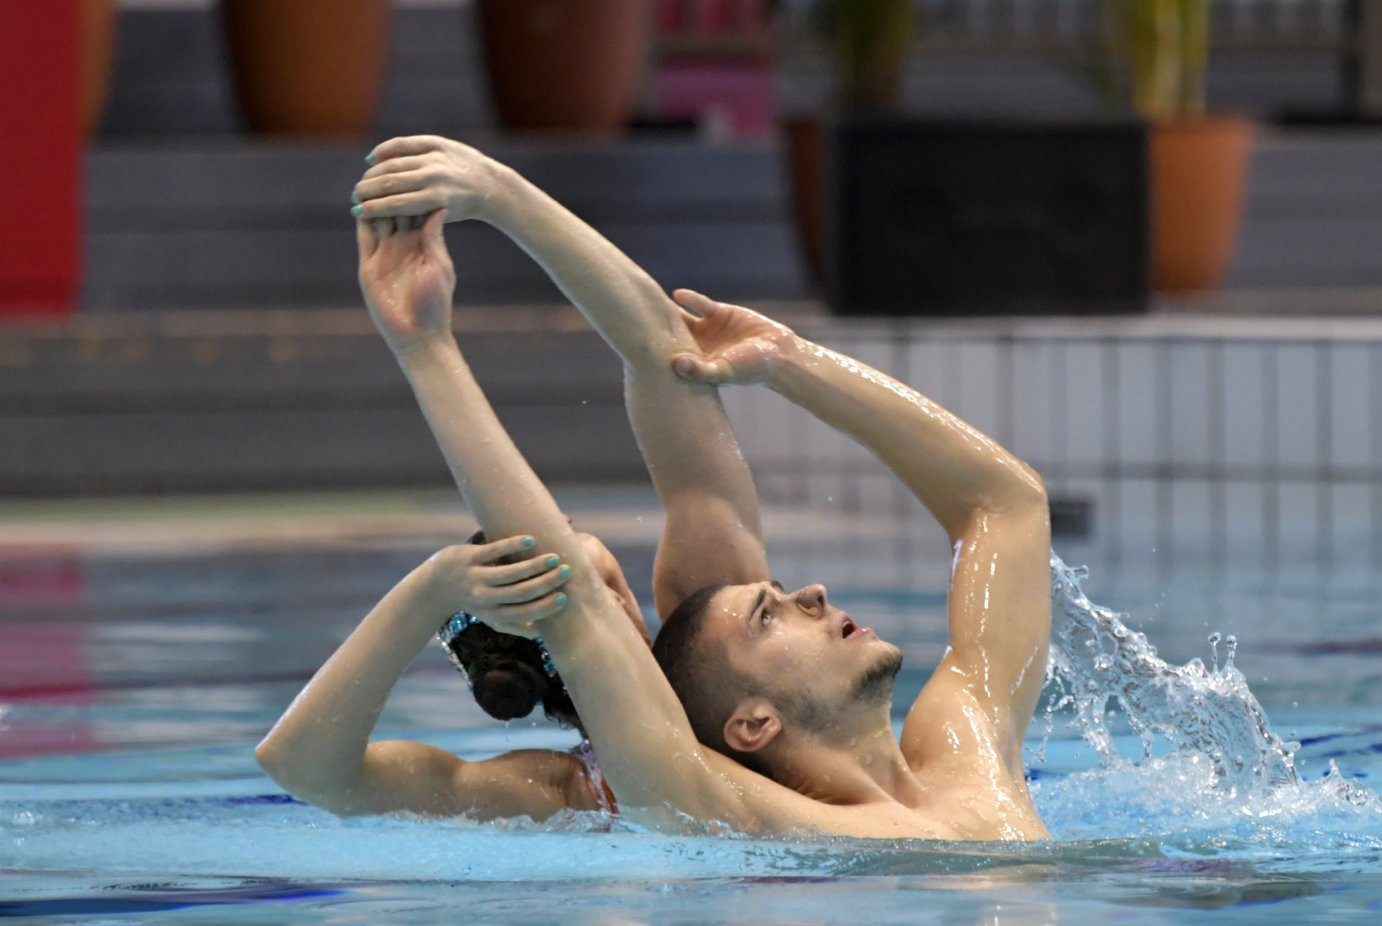 Italian artistry has audience enraptured at FINA Artistic Swimming World Series in Tokyo